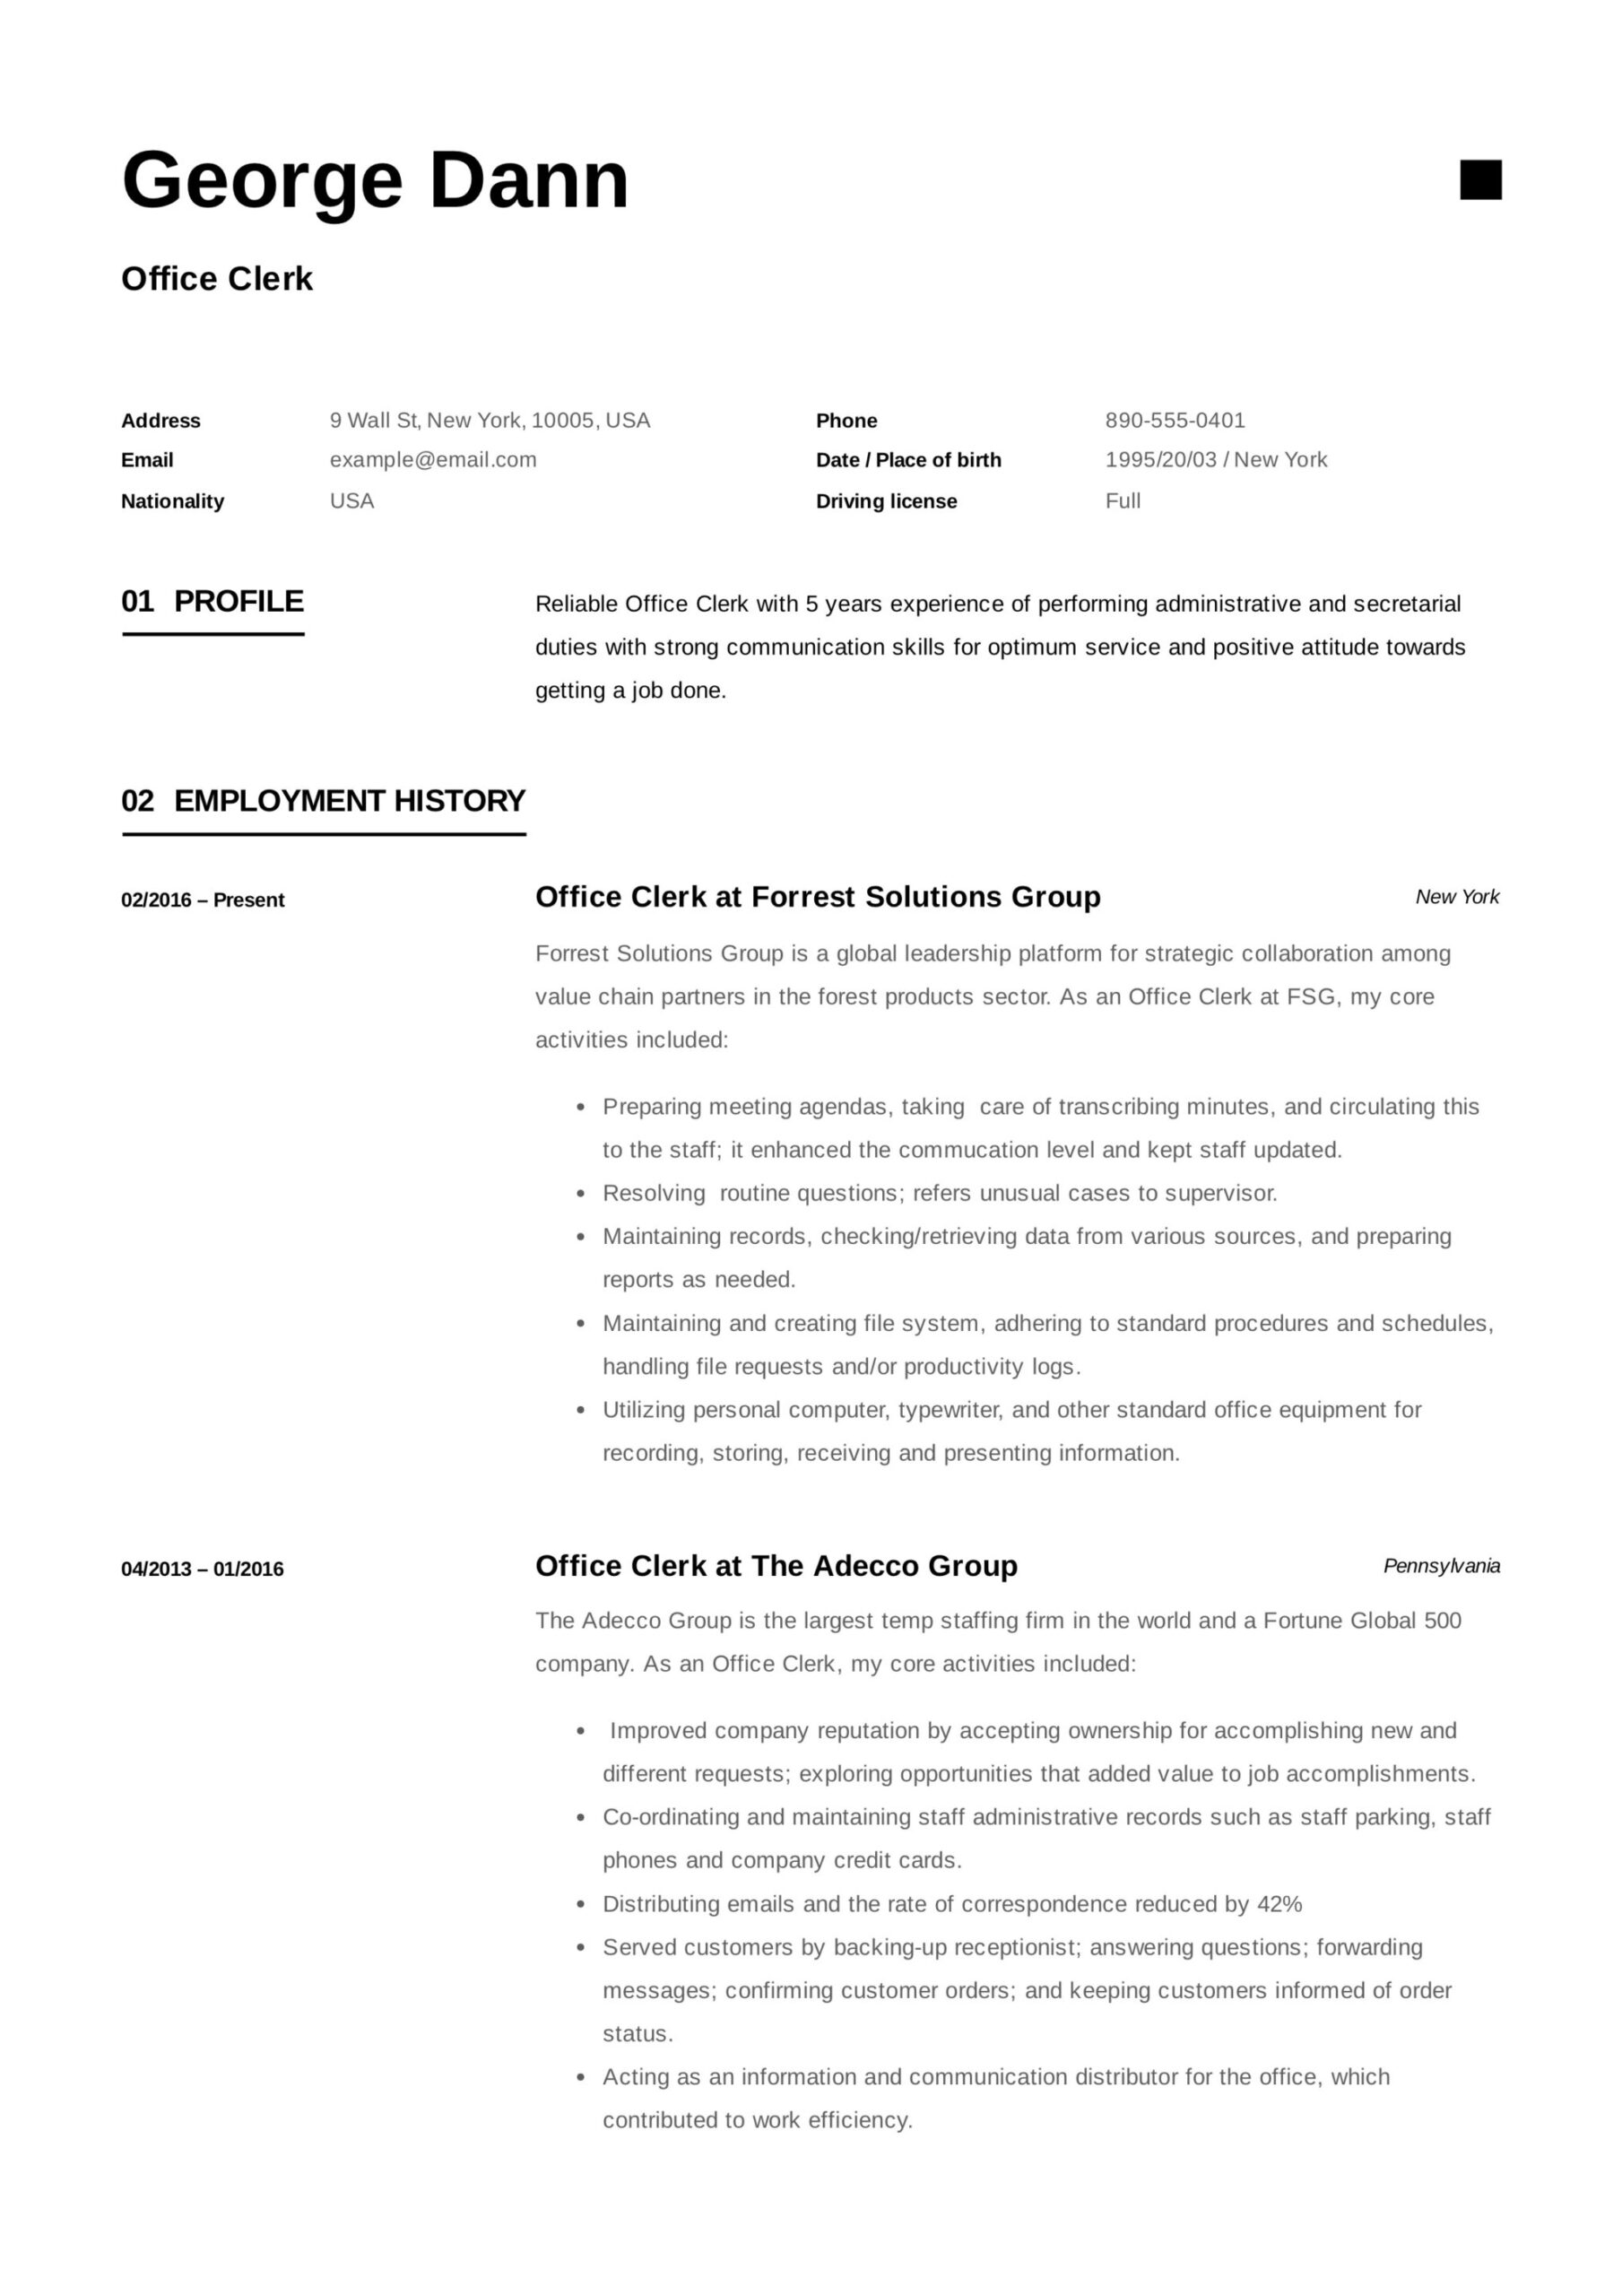 office clerk resume guide samples pdf objective for dann sample graduate nursing school Resume Resume Objective For Office Clerk